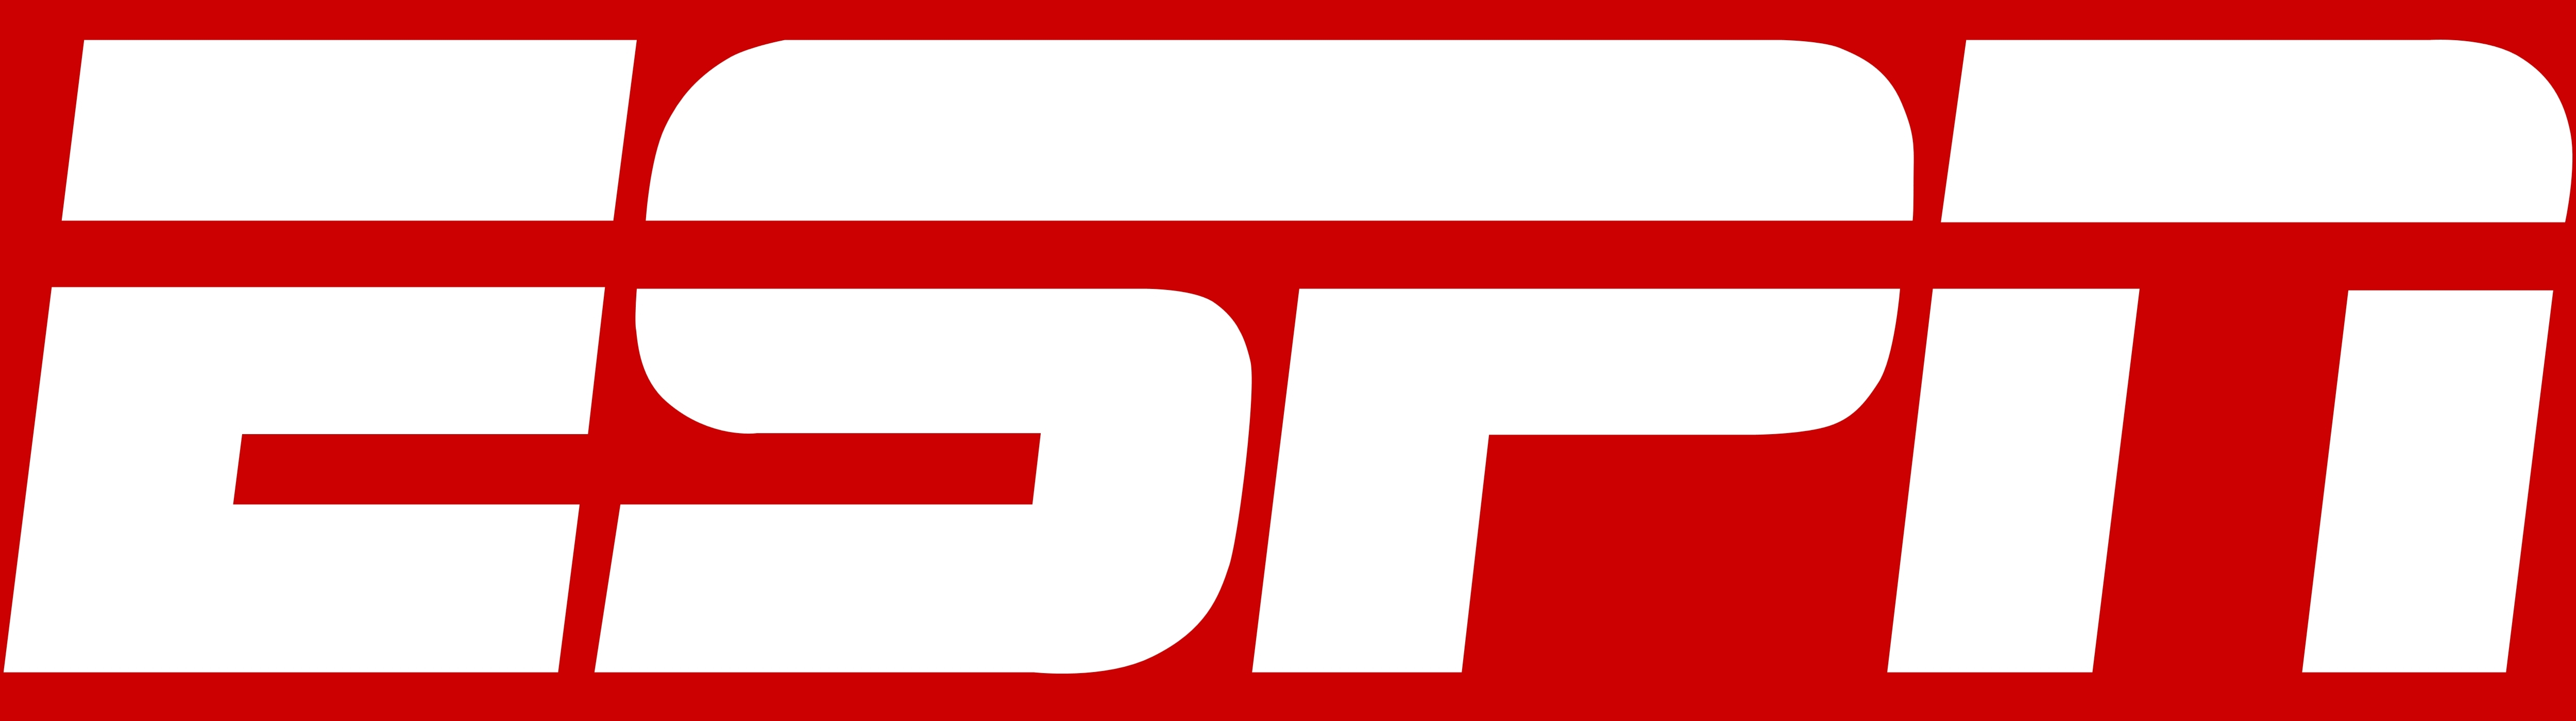 Image result for espn logo